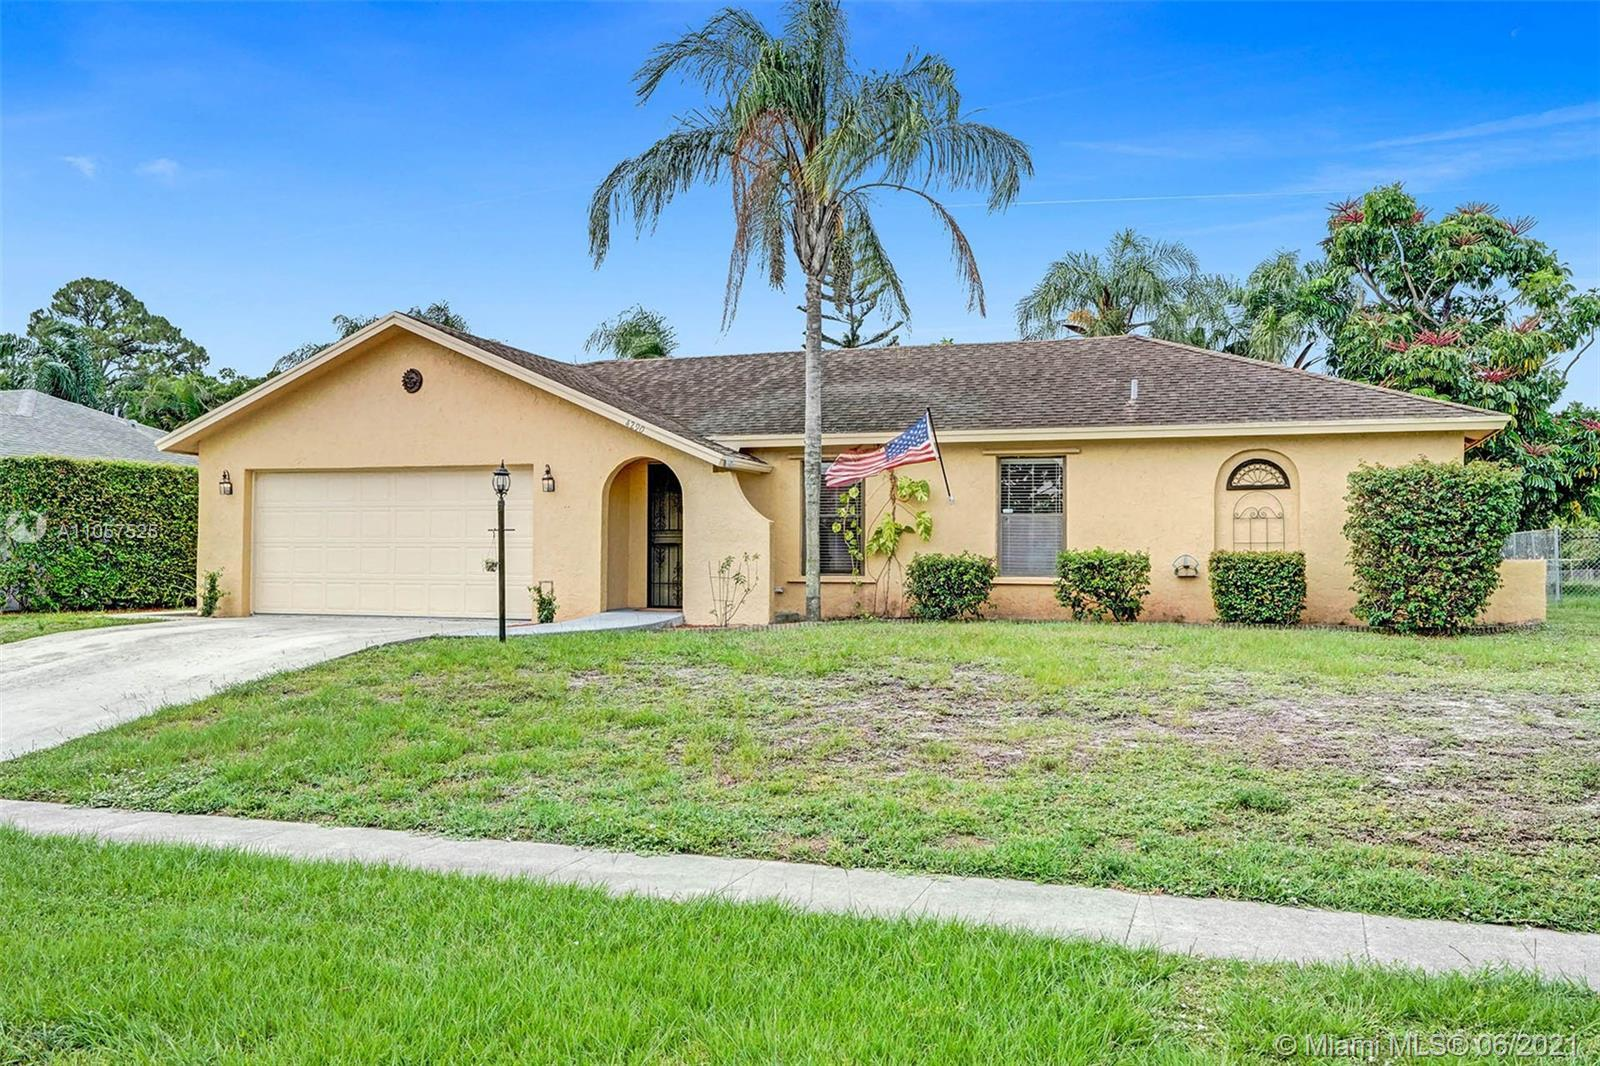 A true gem centrally located with an open and spacious layout and a lush, tropical backyard on a can